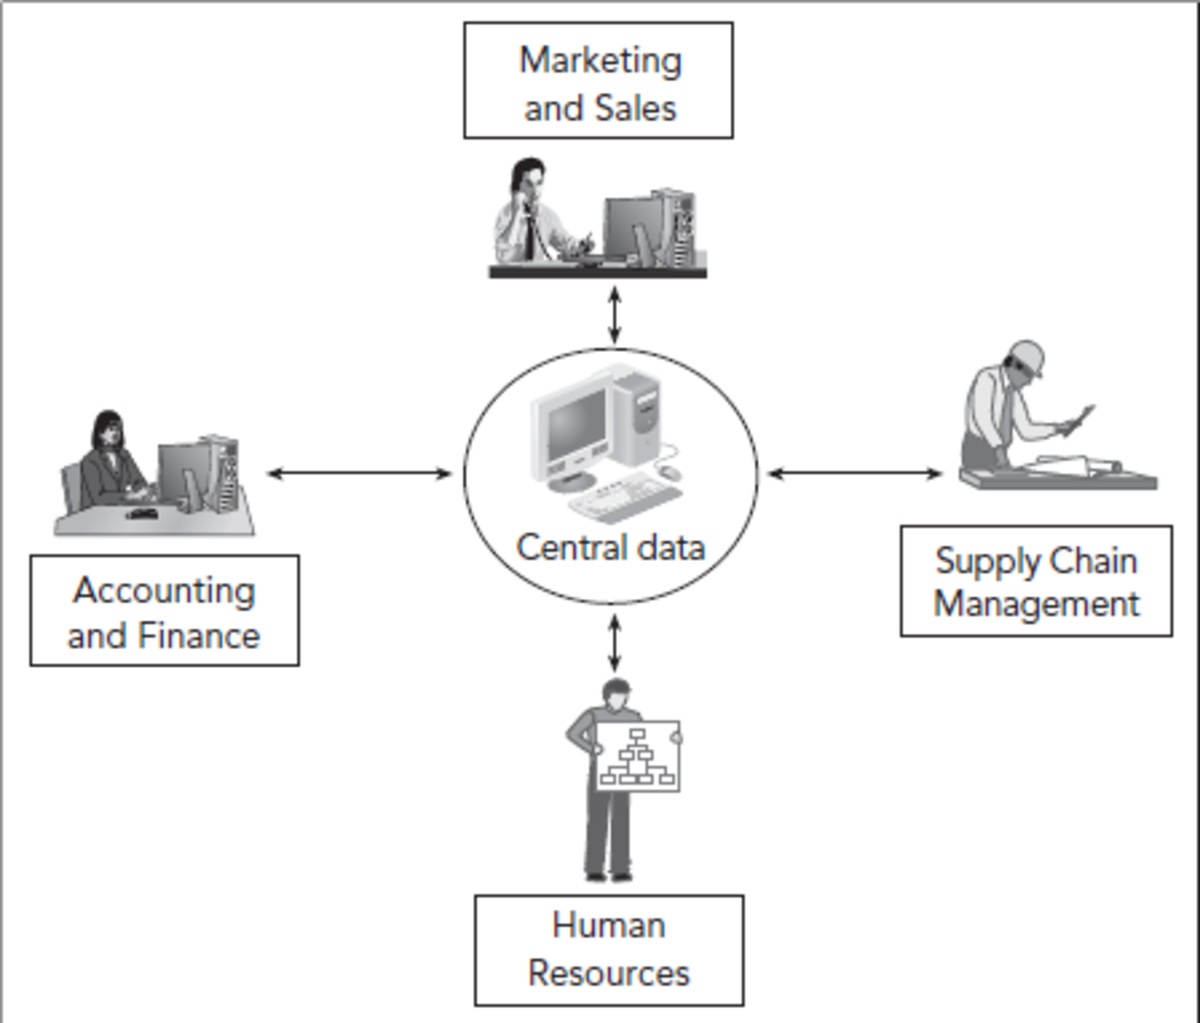 Basic functions of Enterprise Resource Planning (ERP) systems